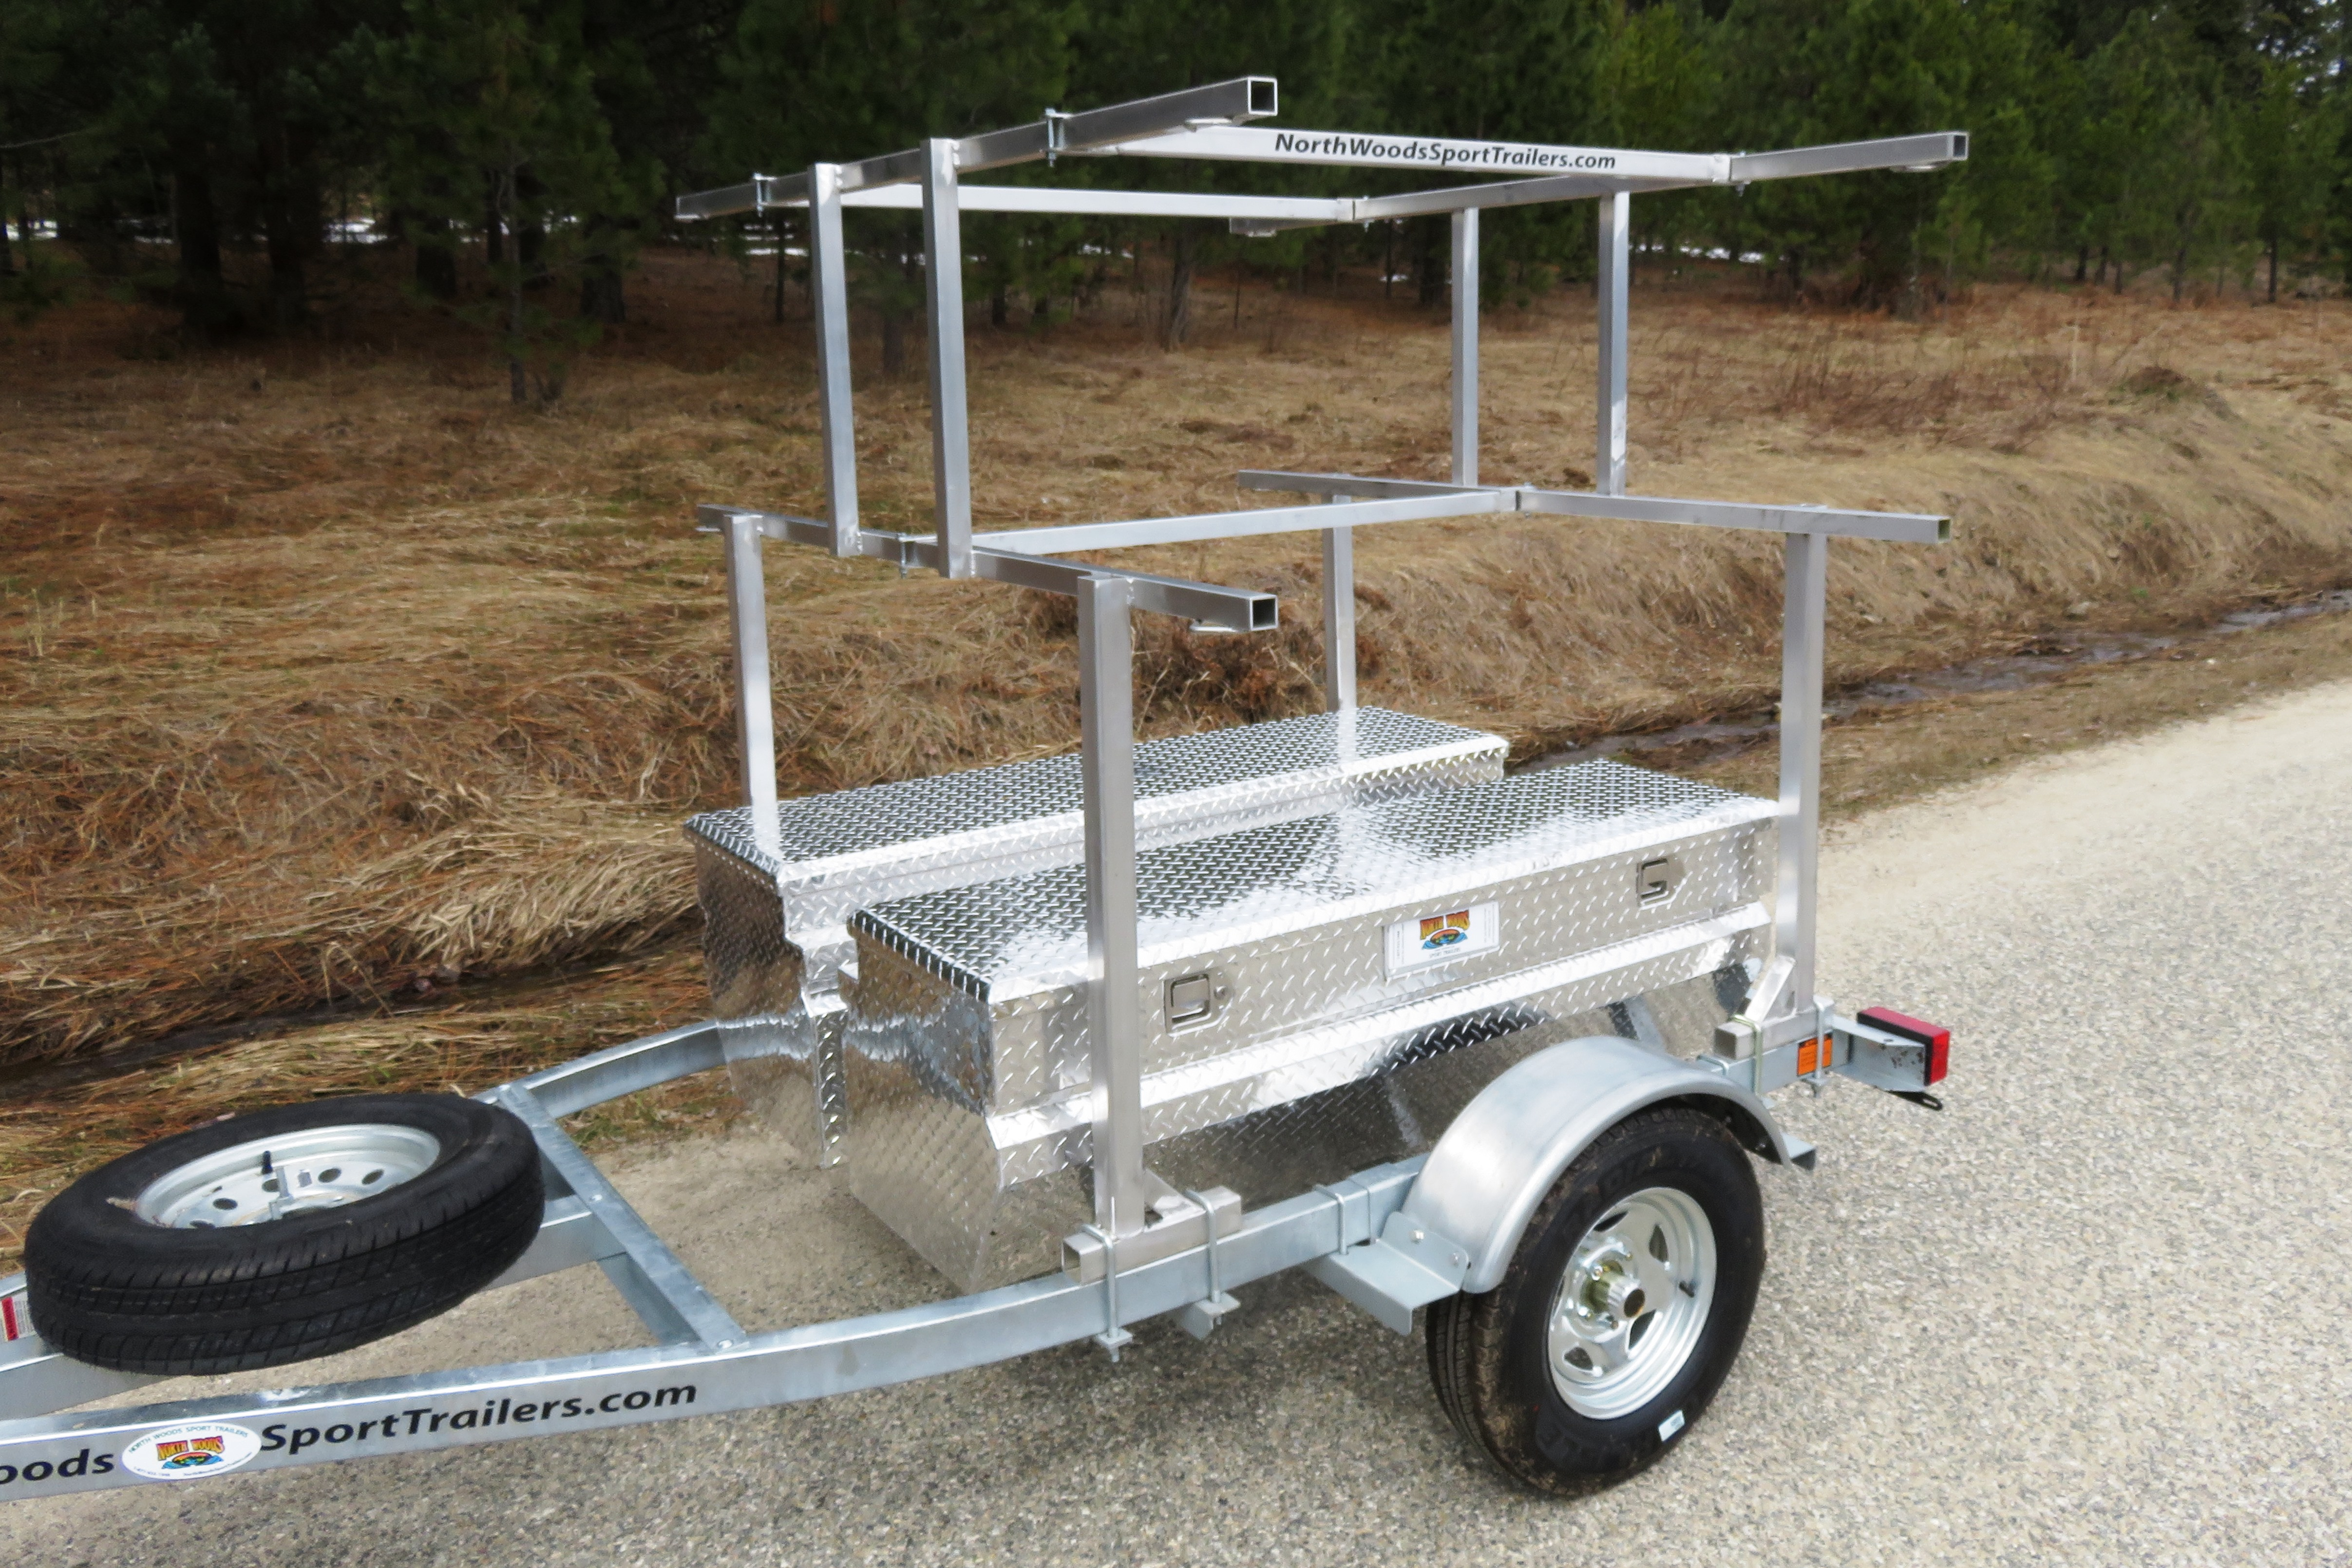 Transport, Storage & Launching: RTT Roof Top Tent, Bikes Canoes, Kayaks, Storage, by North Woods Sport Trailers - Image 4035